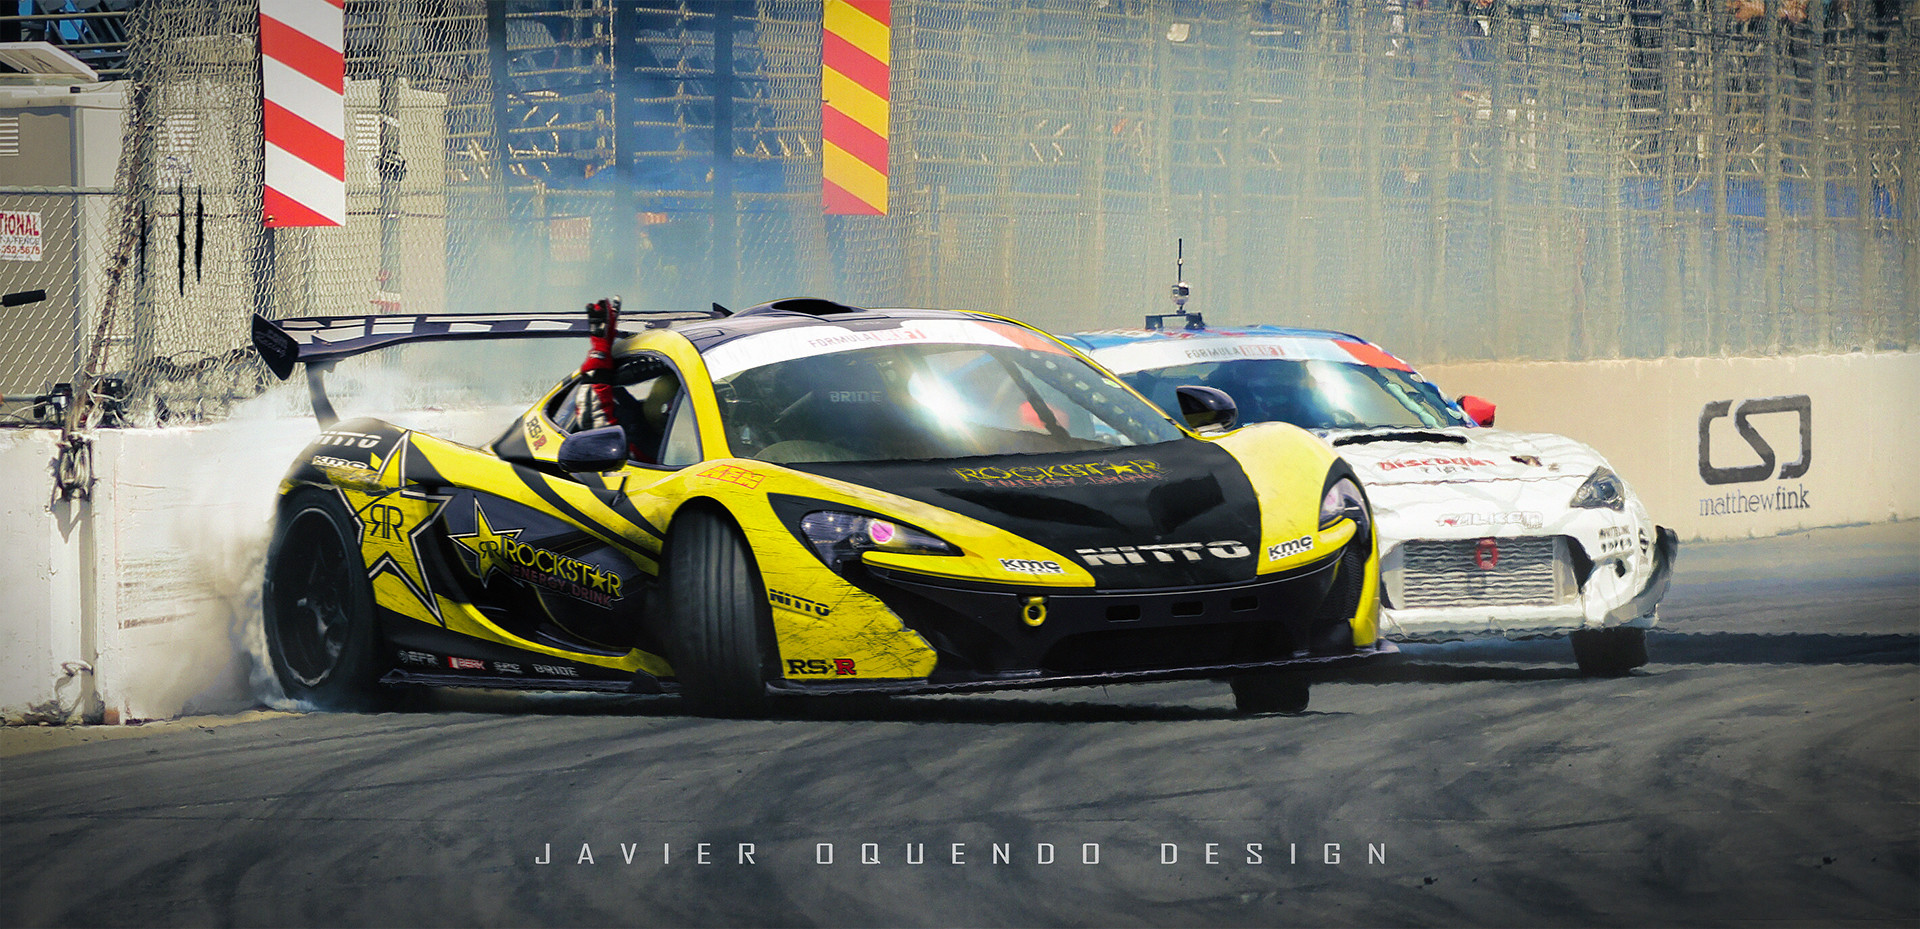 Javier Oquendo The Holy Trinity Of Drift Cars